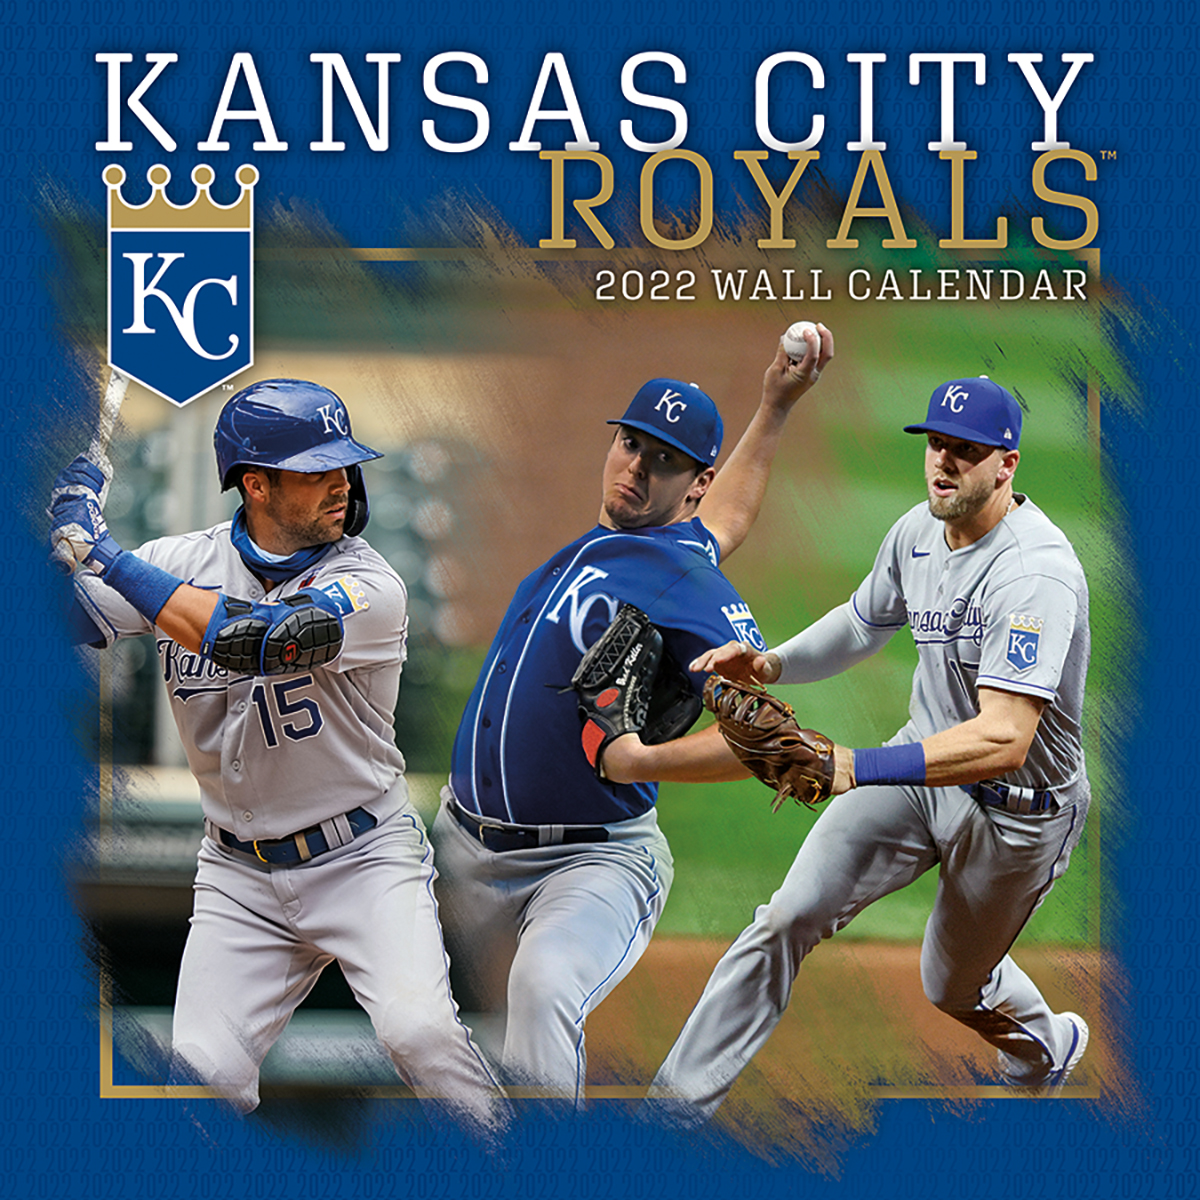 Kansas City Royals 2020 Wall Calendar